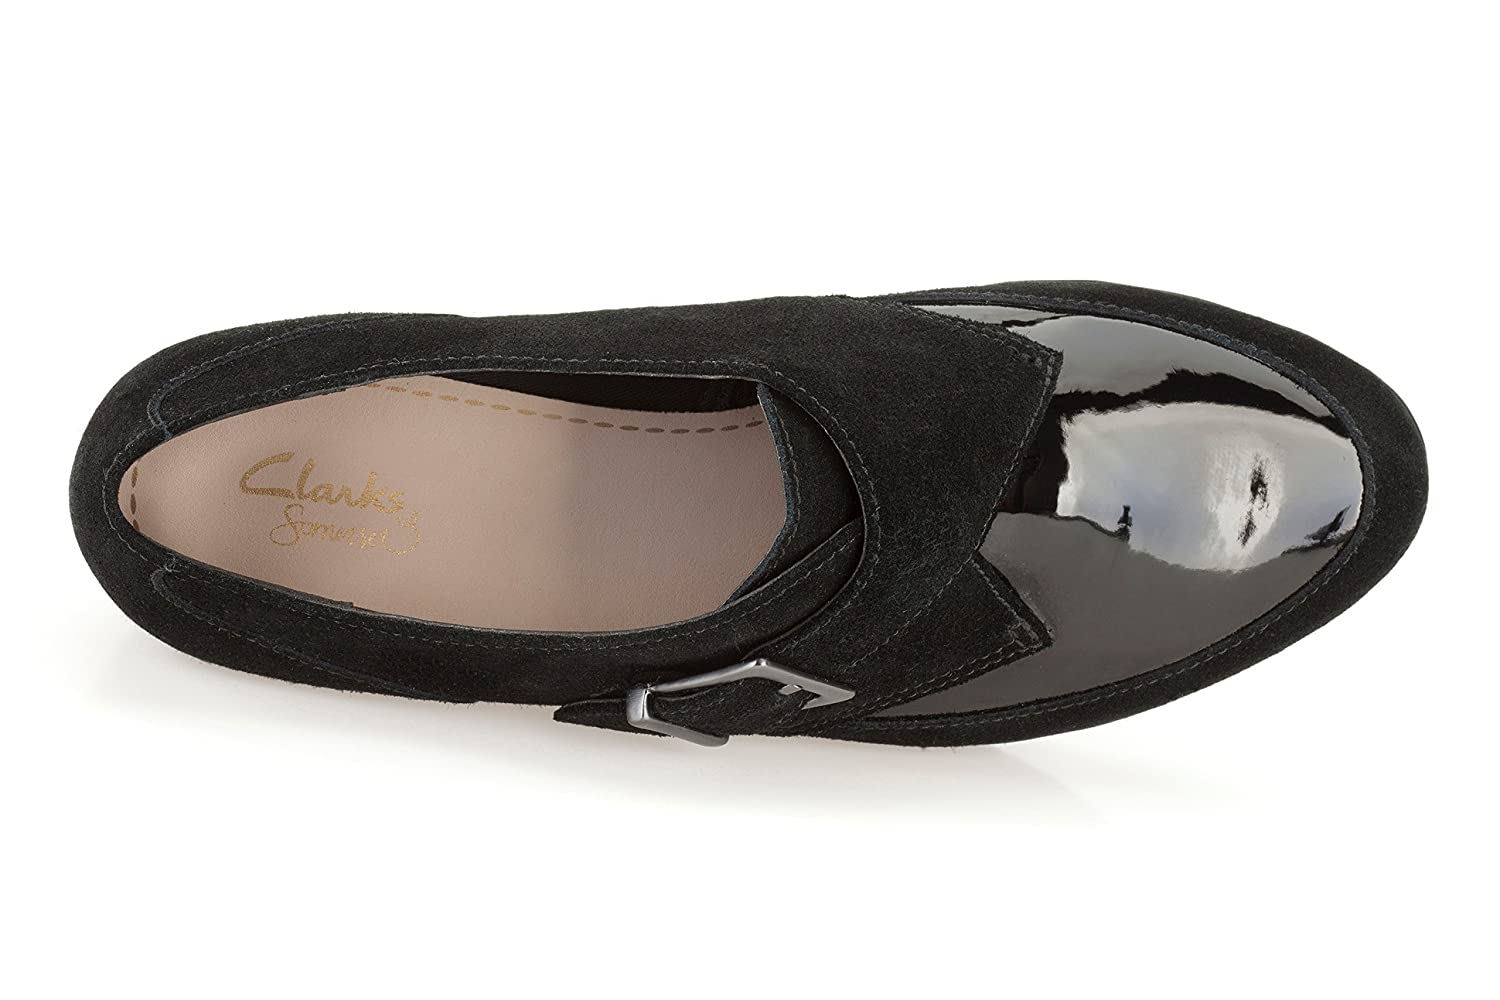 e7ef604db08b Clarks Compass Point Black Suede Ladies Casual Slip On Shoe 8 UK  Amazon.co. uk  Shoes   Bags